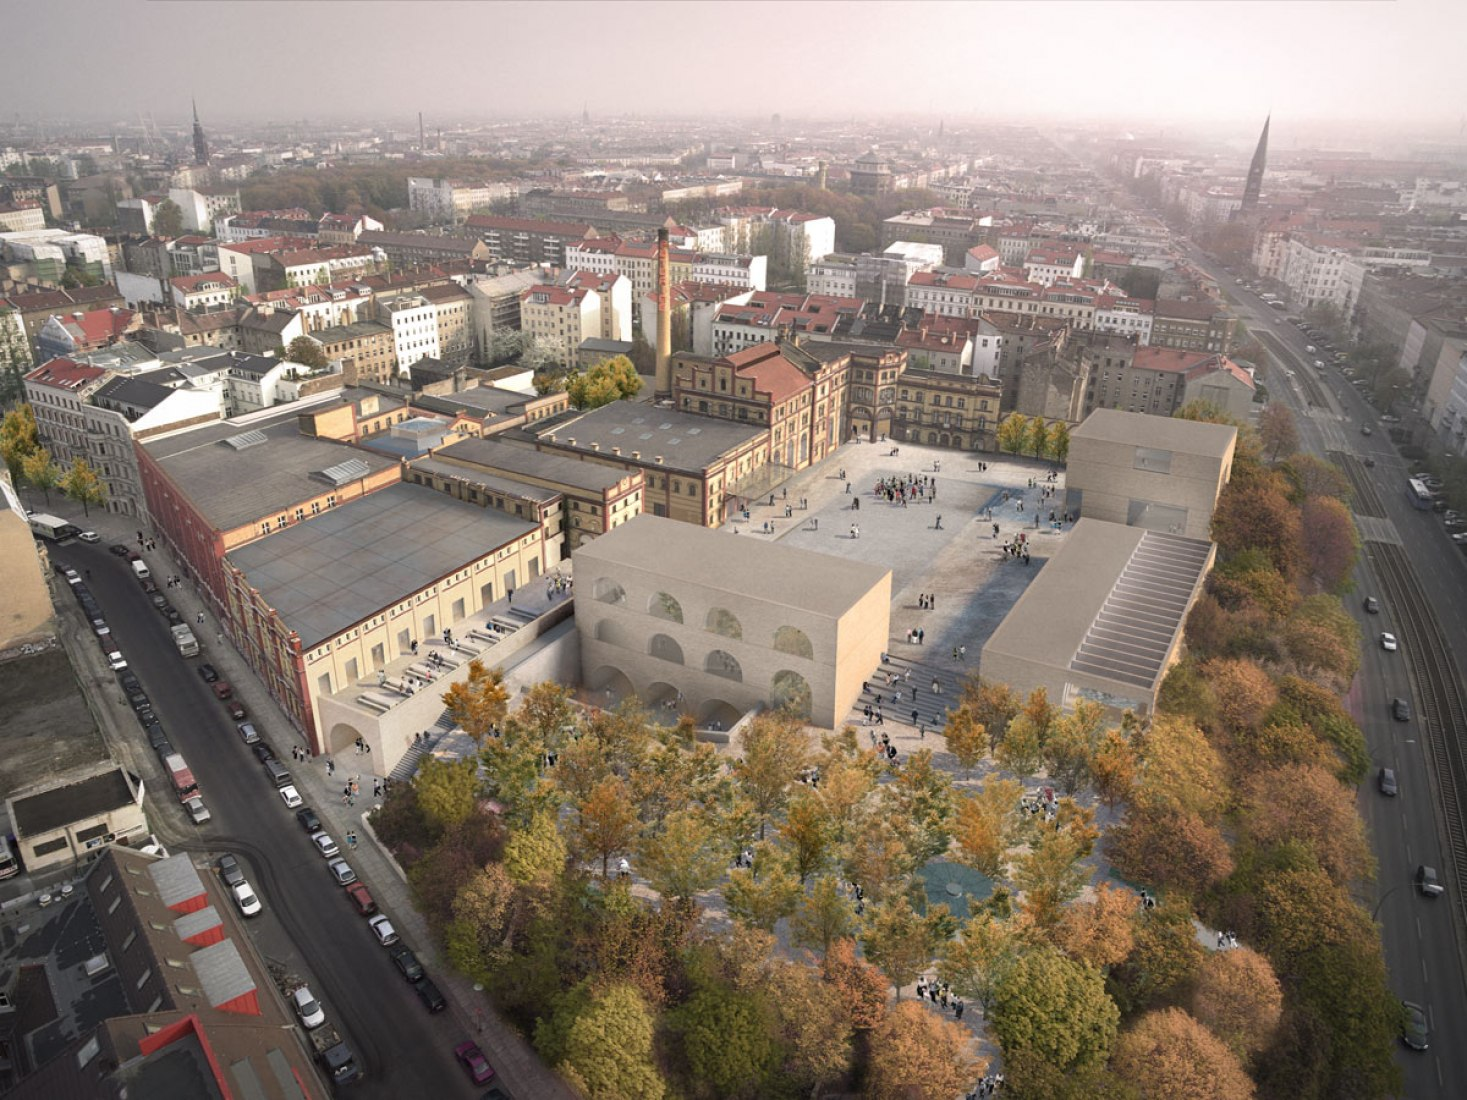 Vista general. Bötzow Brewery por David Chipperfield. Imagen © David Chipperfield Architects.